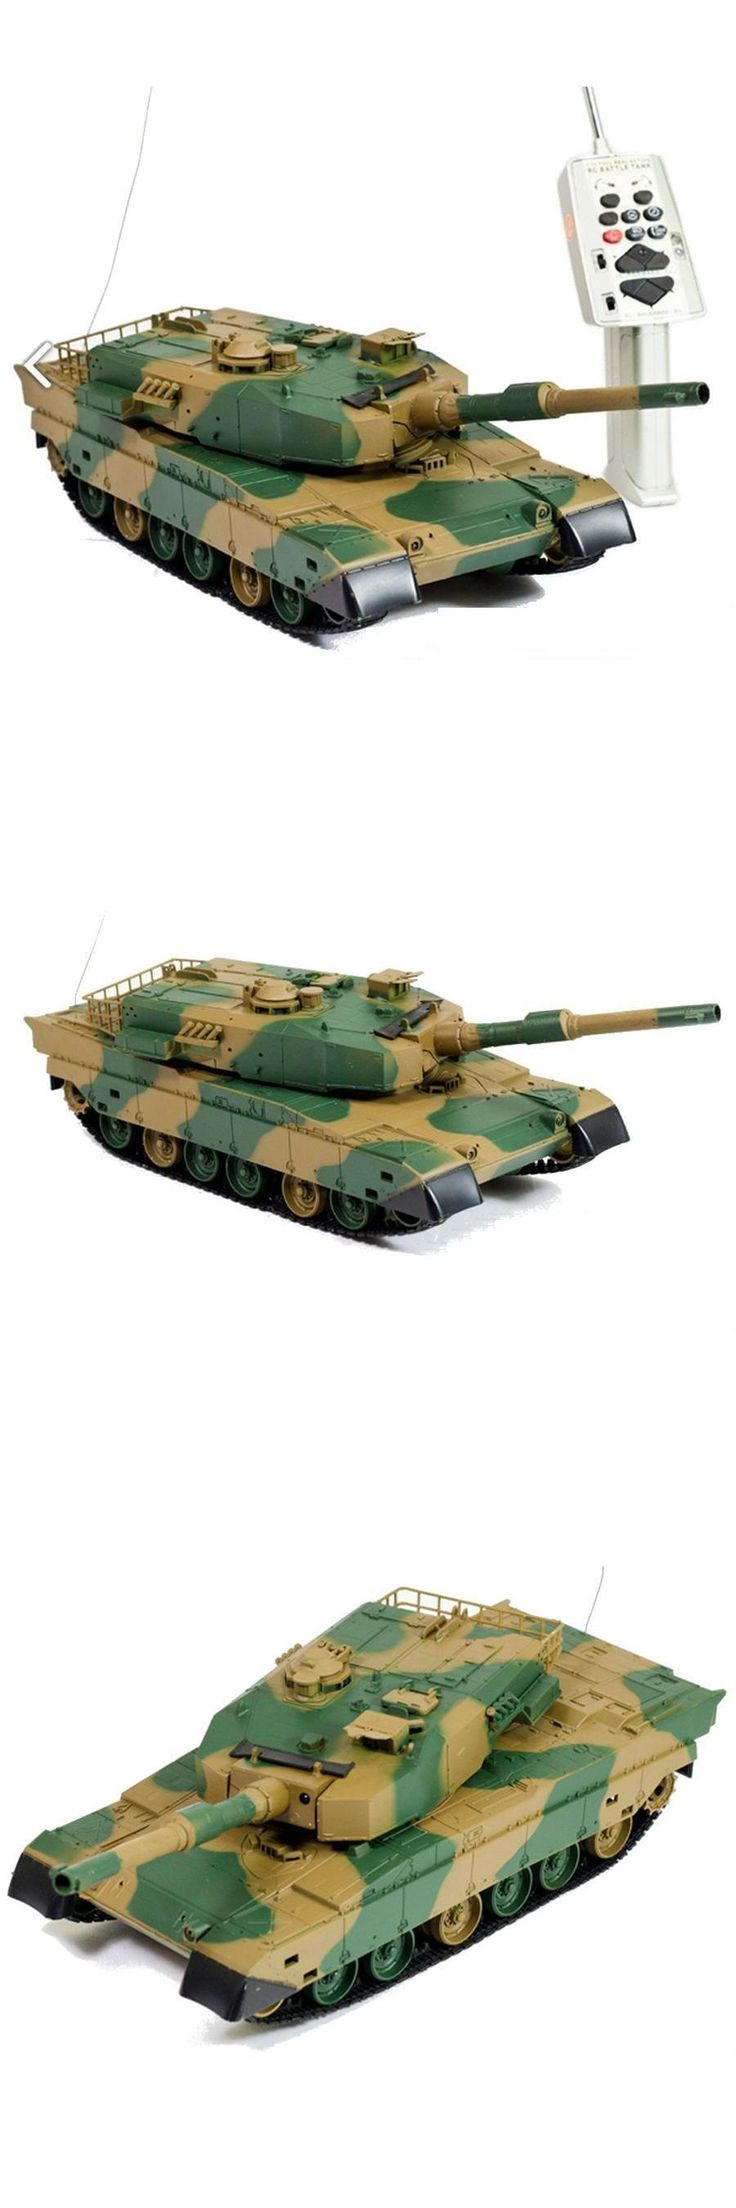 Tanks and Military Vehicles 45986: Battle Tank Japanese Defense Force Type 90 Rc Radio Controlled 13 In Long 1:24 -> BUY IT NOW ONLY: $79.95 on eBay!